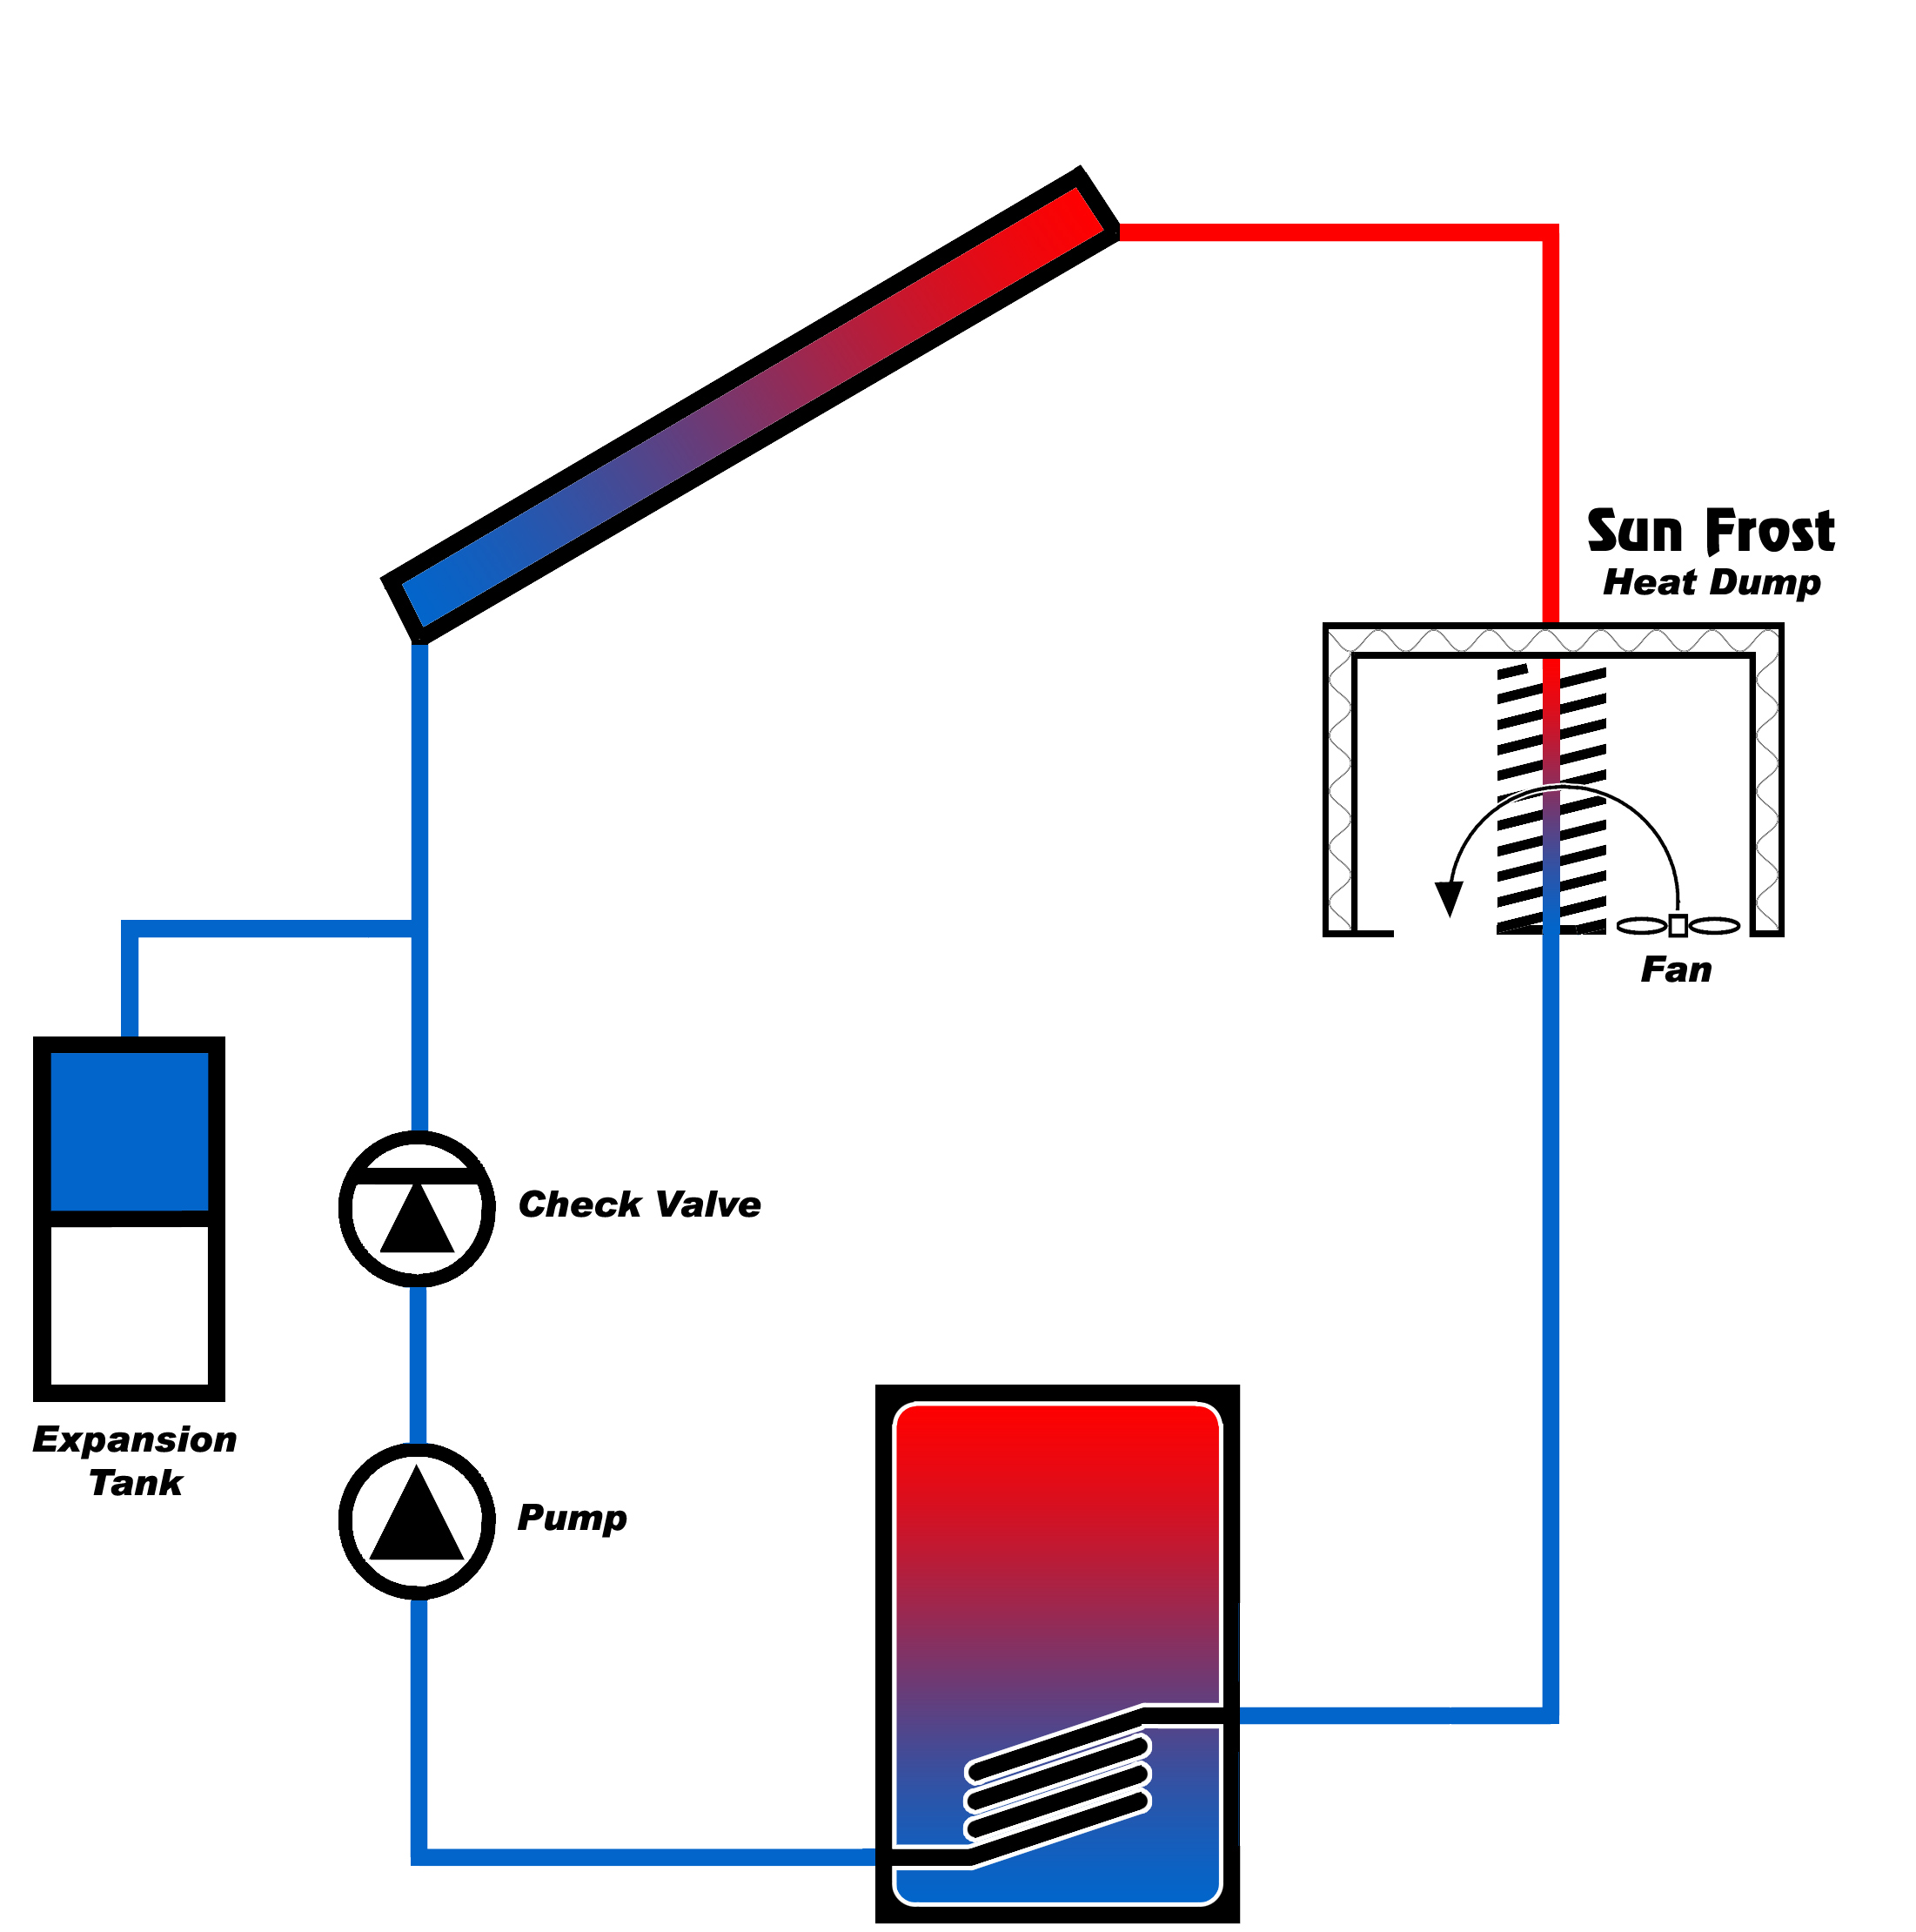 solar water heater schematic diagram 4 way tele switch wiring space